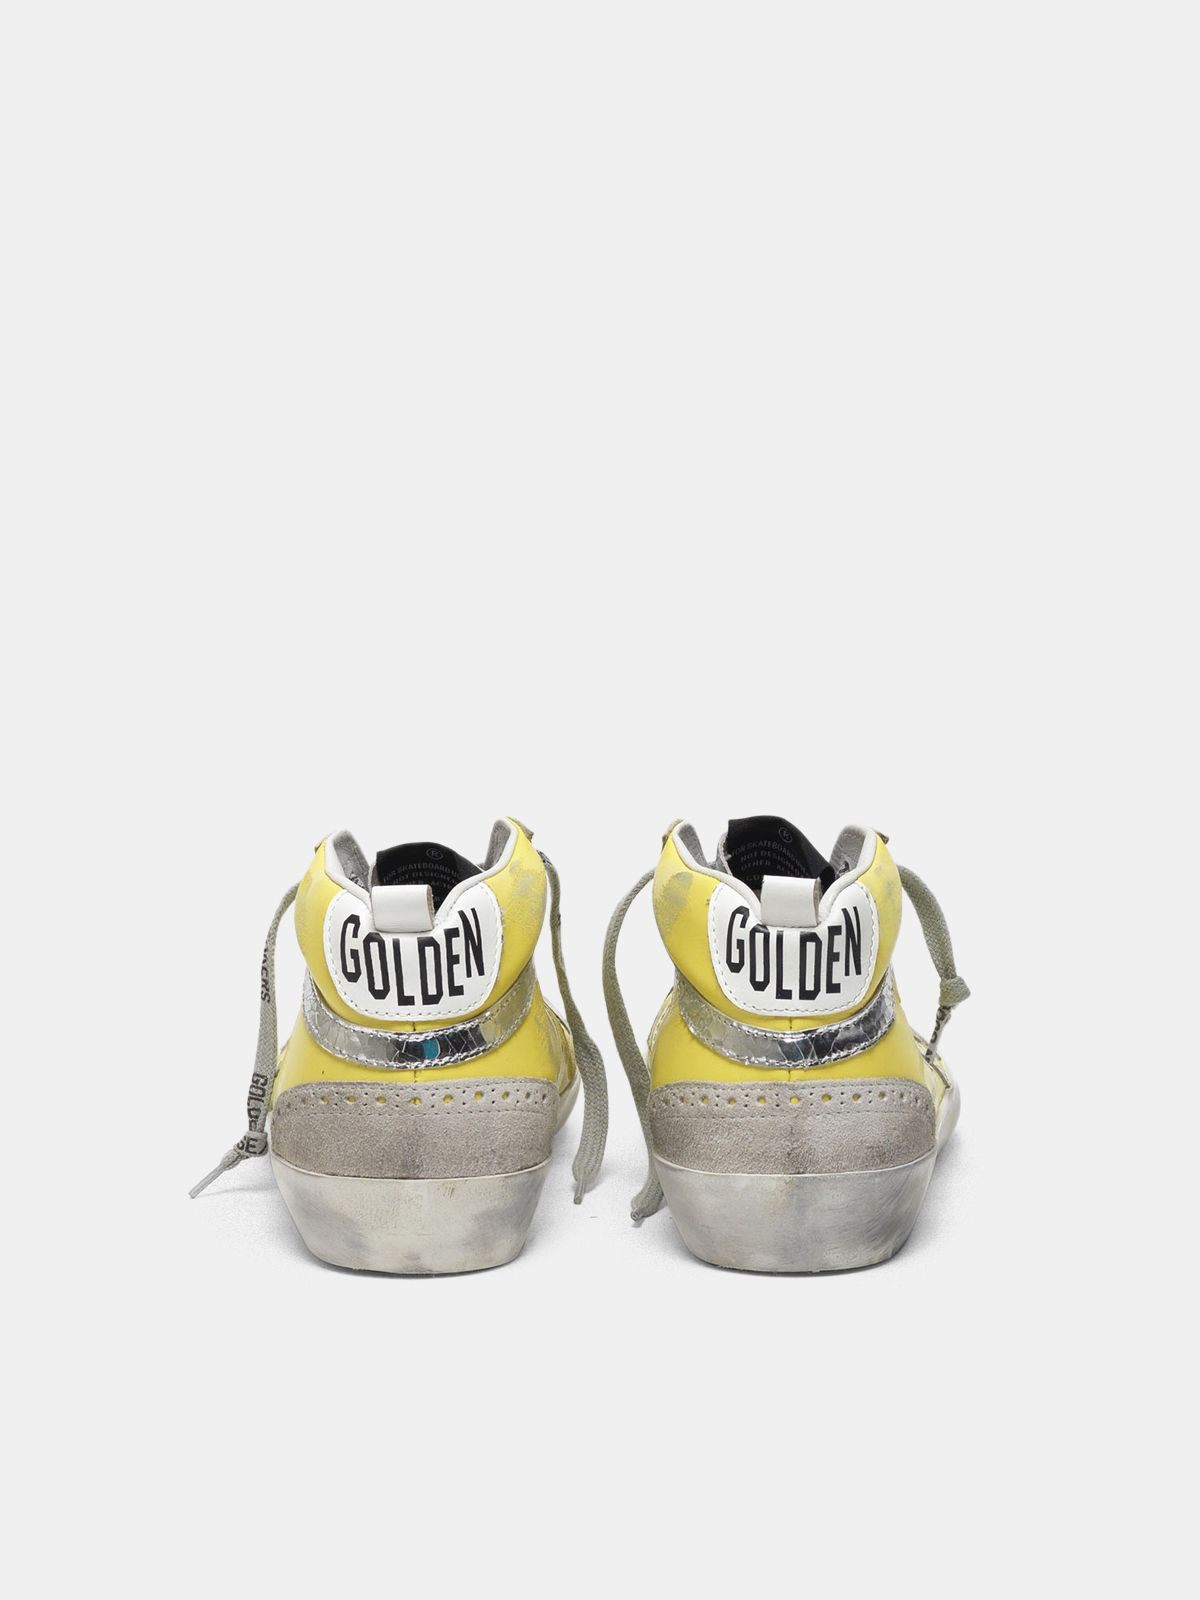 Golden Goose - Mid Star sneakers with suede inserts and crackle details in